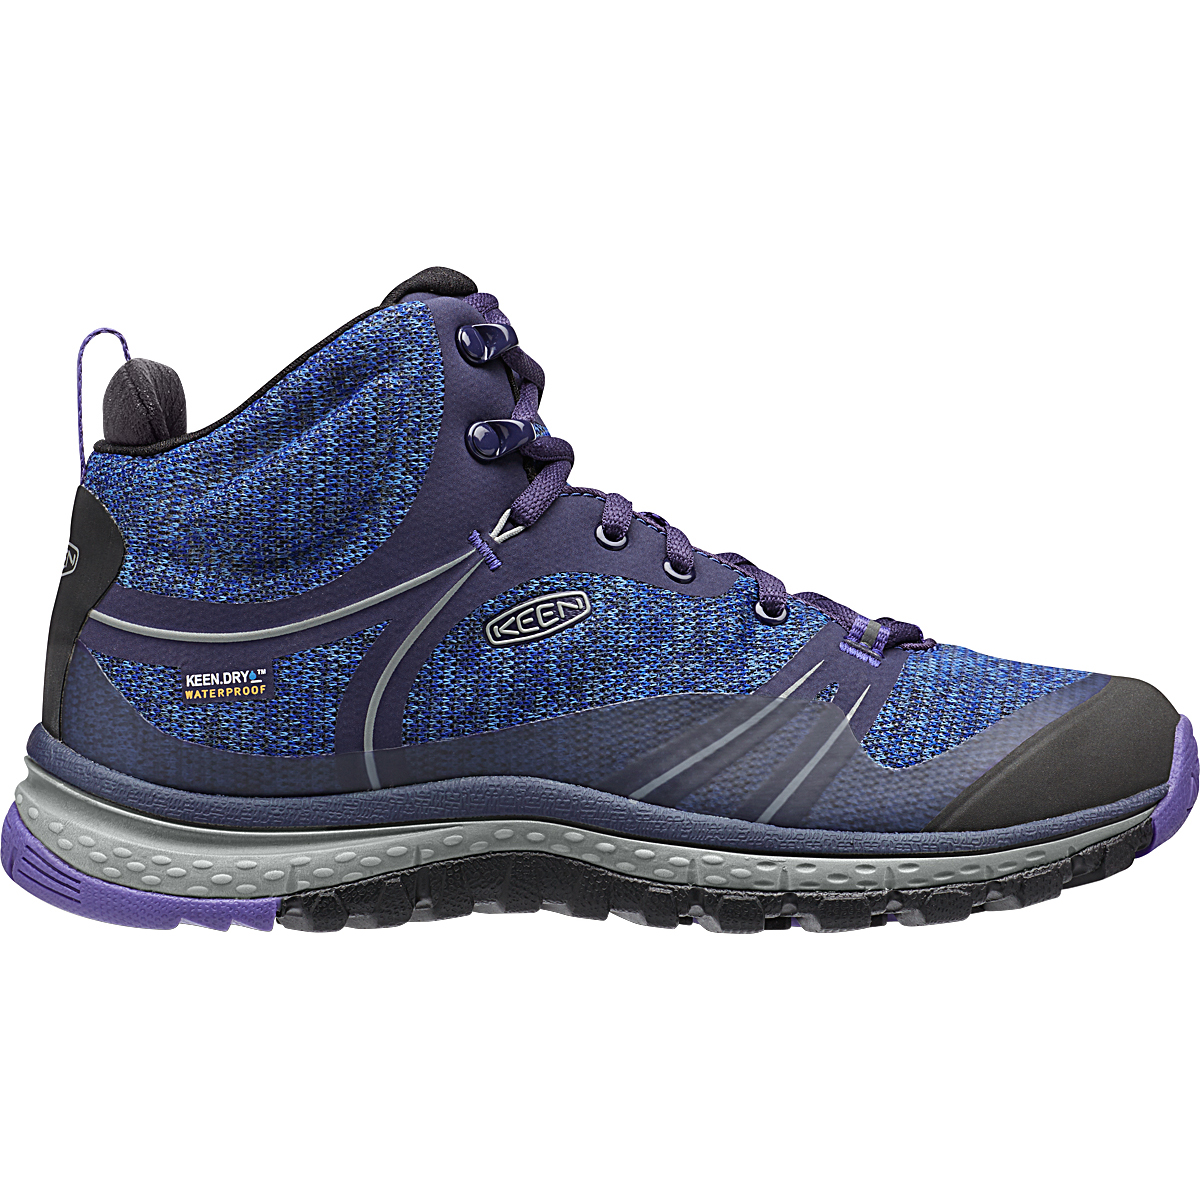 Keen Women's Terradora Waterproof Mid Hiking Boots - Blue, 6.5